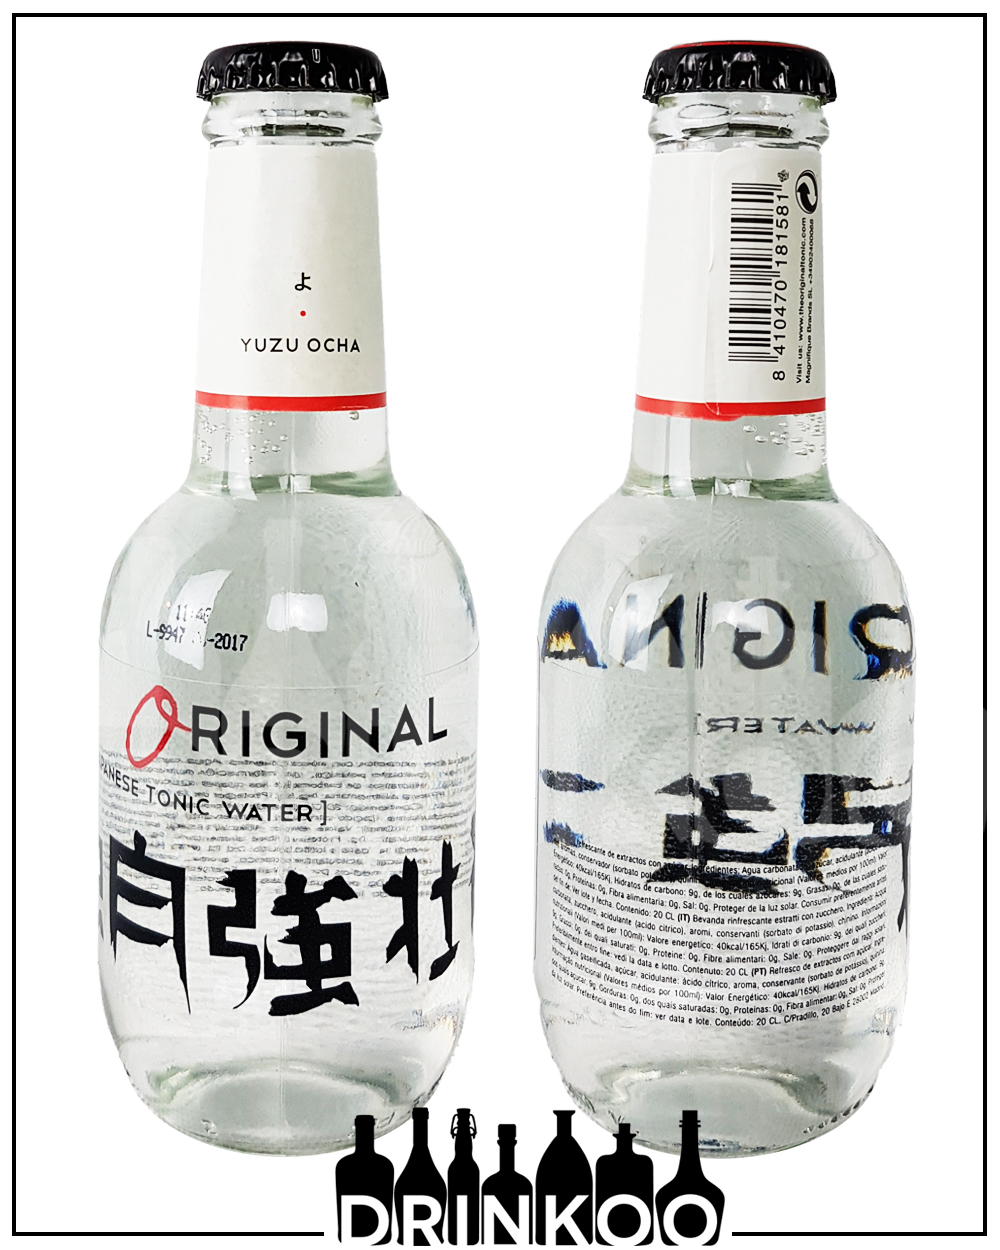 Orginal Japanese Tonic Water